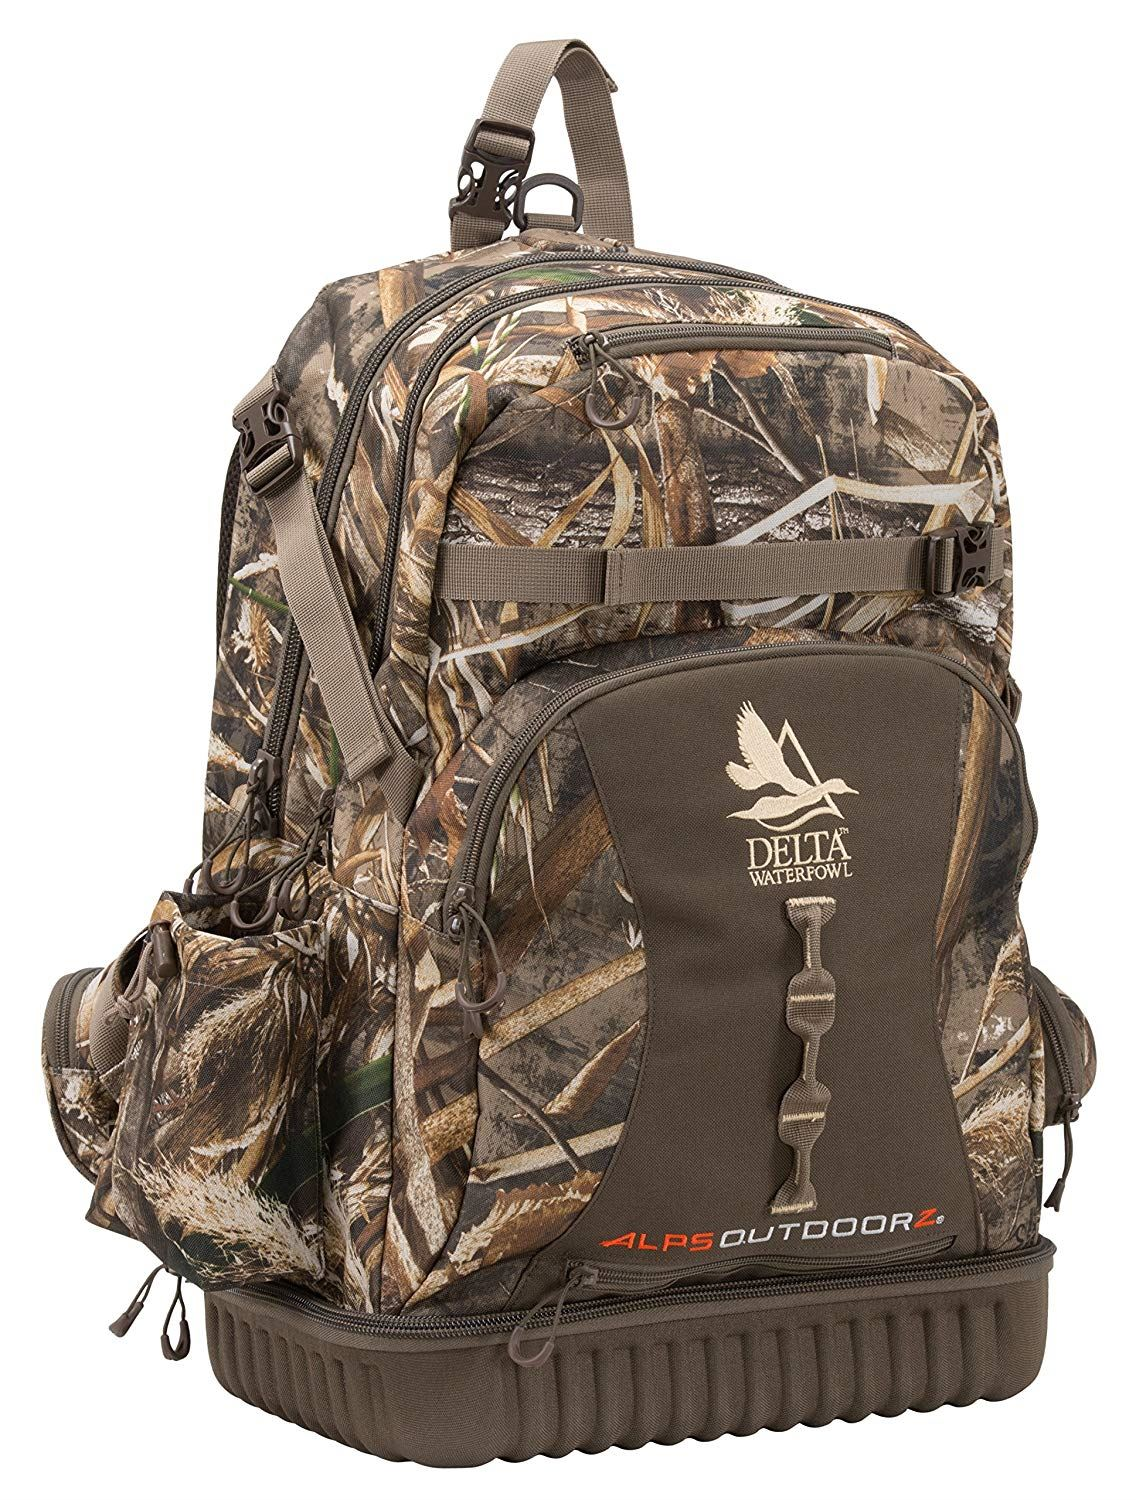 c76e4cfca0 New ALPS OutdoorZ Waterfowl Backpack Blind Bag 9200119 703438921199 ...